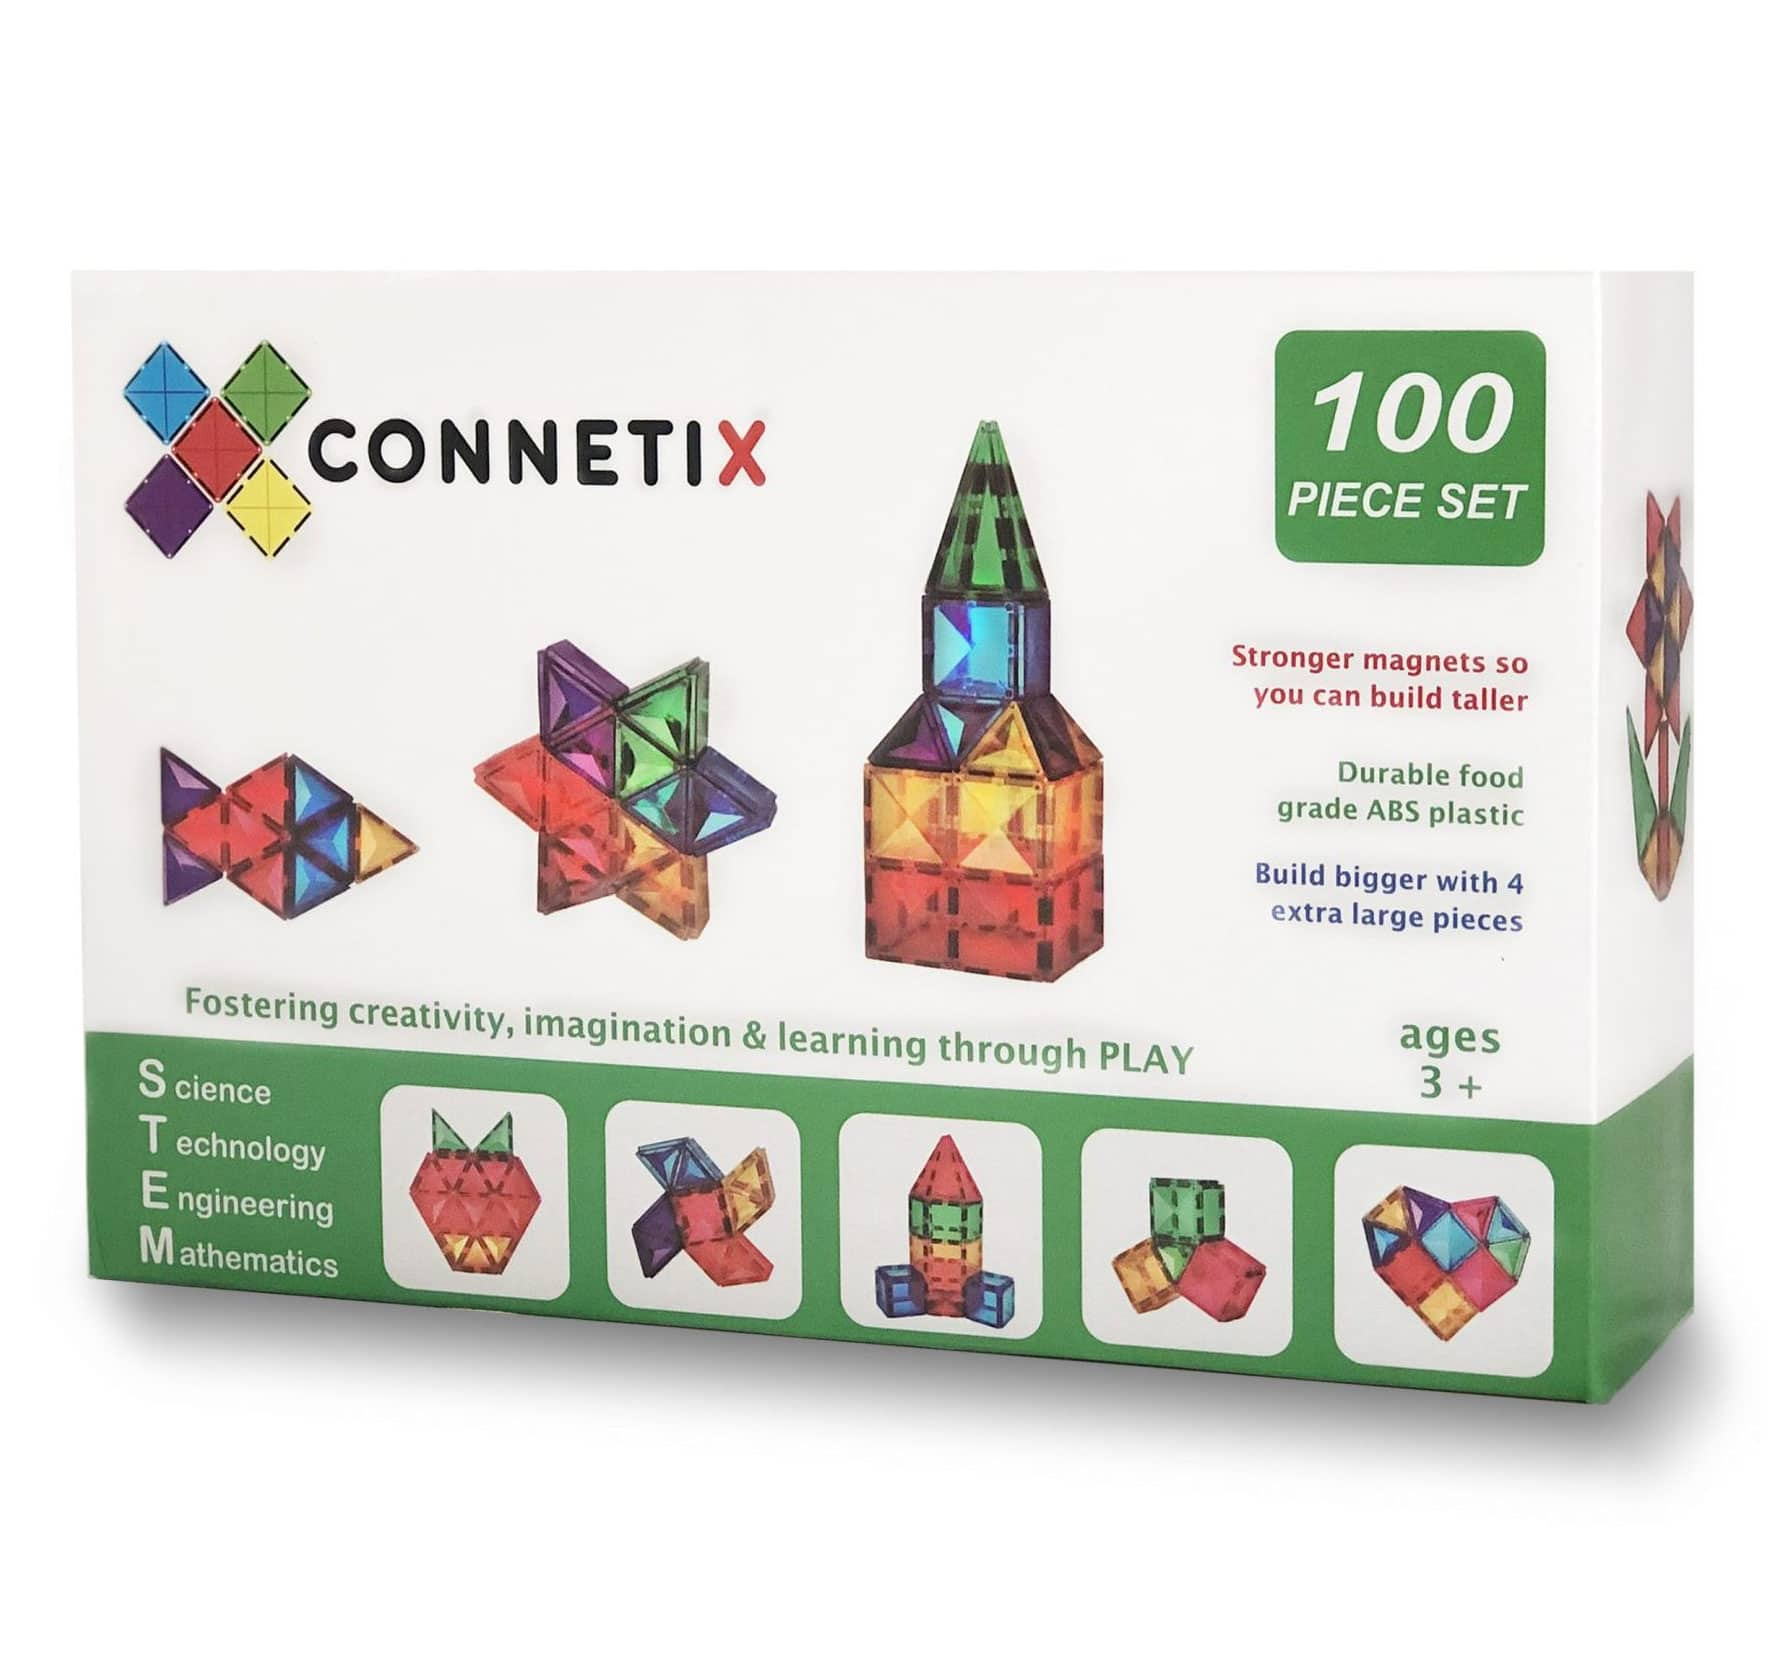 Connetix 100 piece set